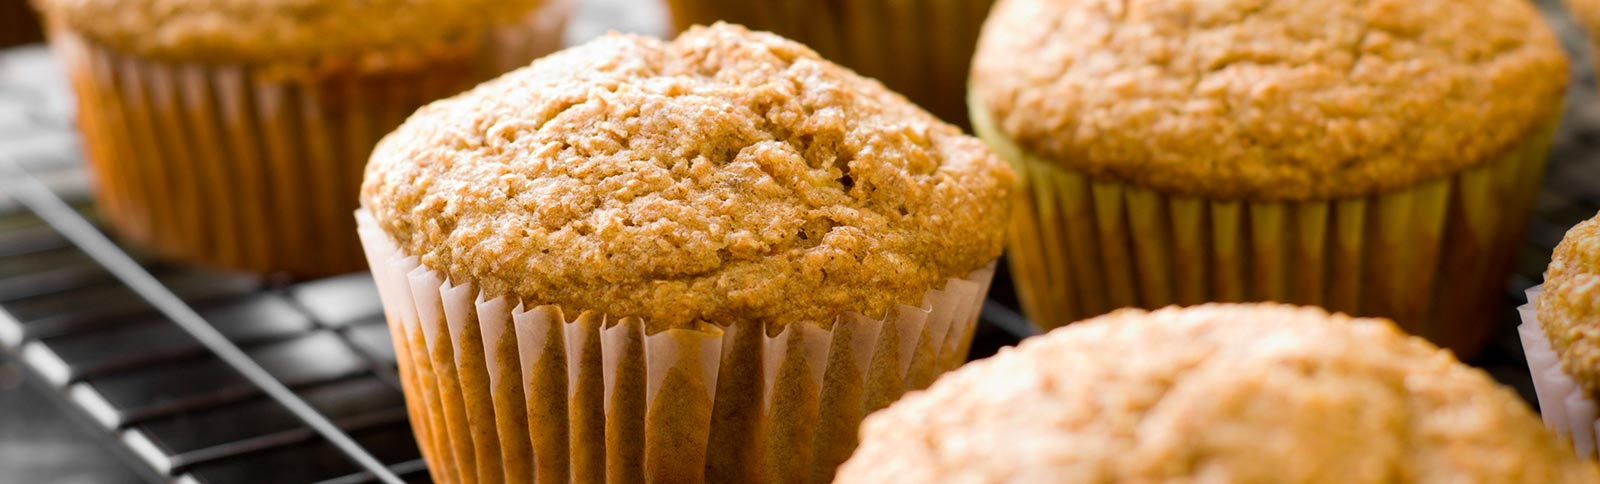 Tough Mudder Protein-Packed Banana Muffins